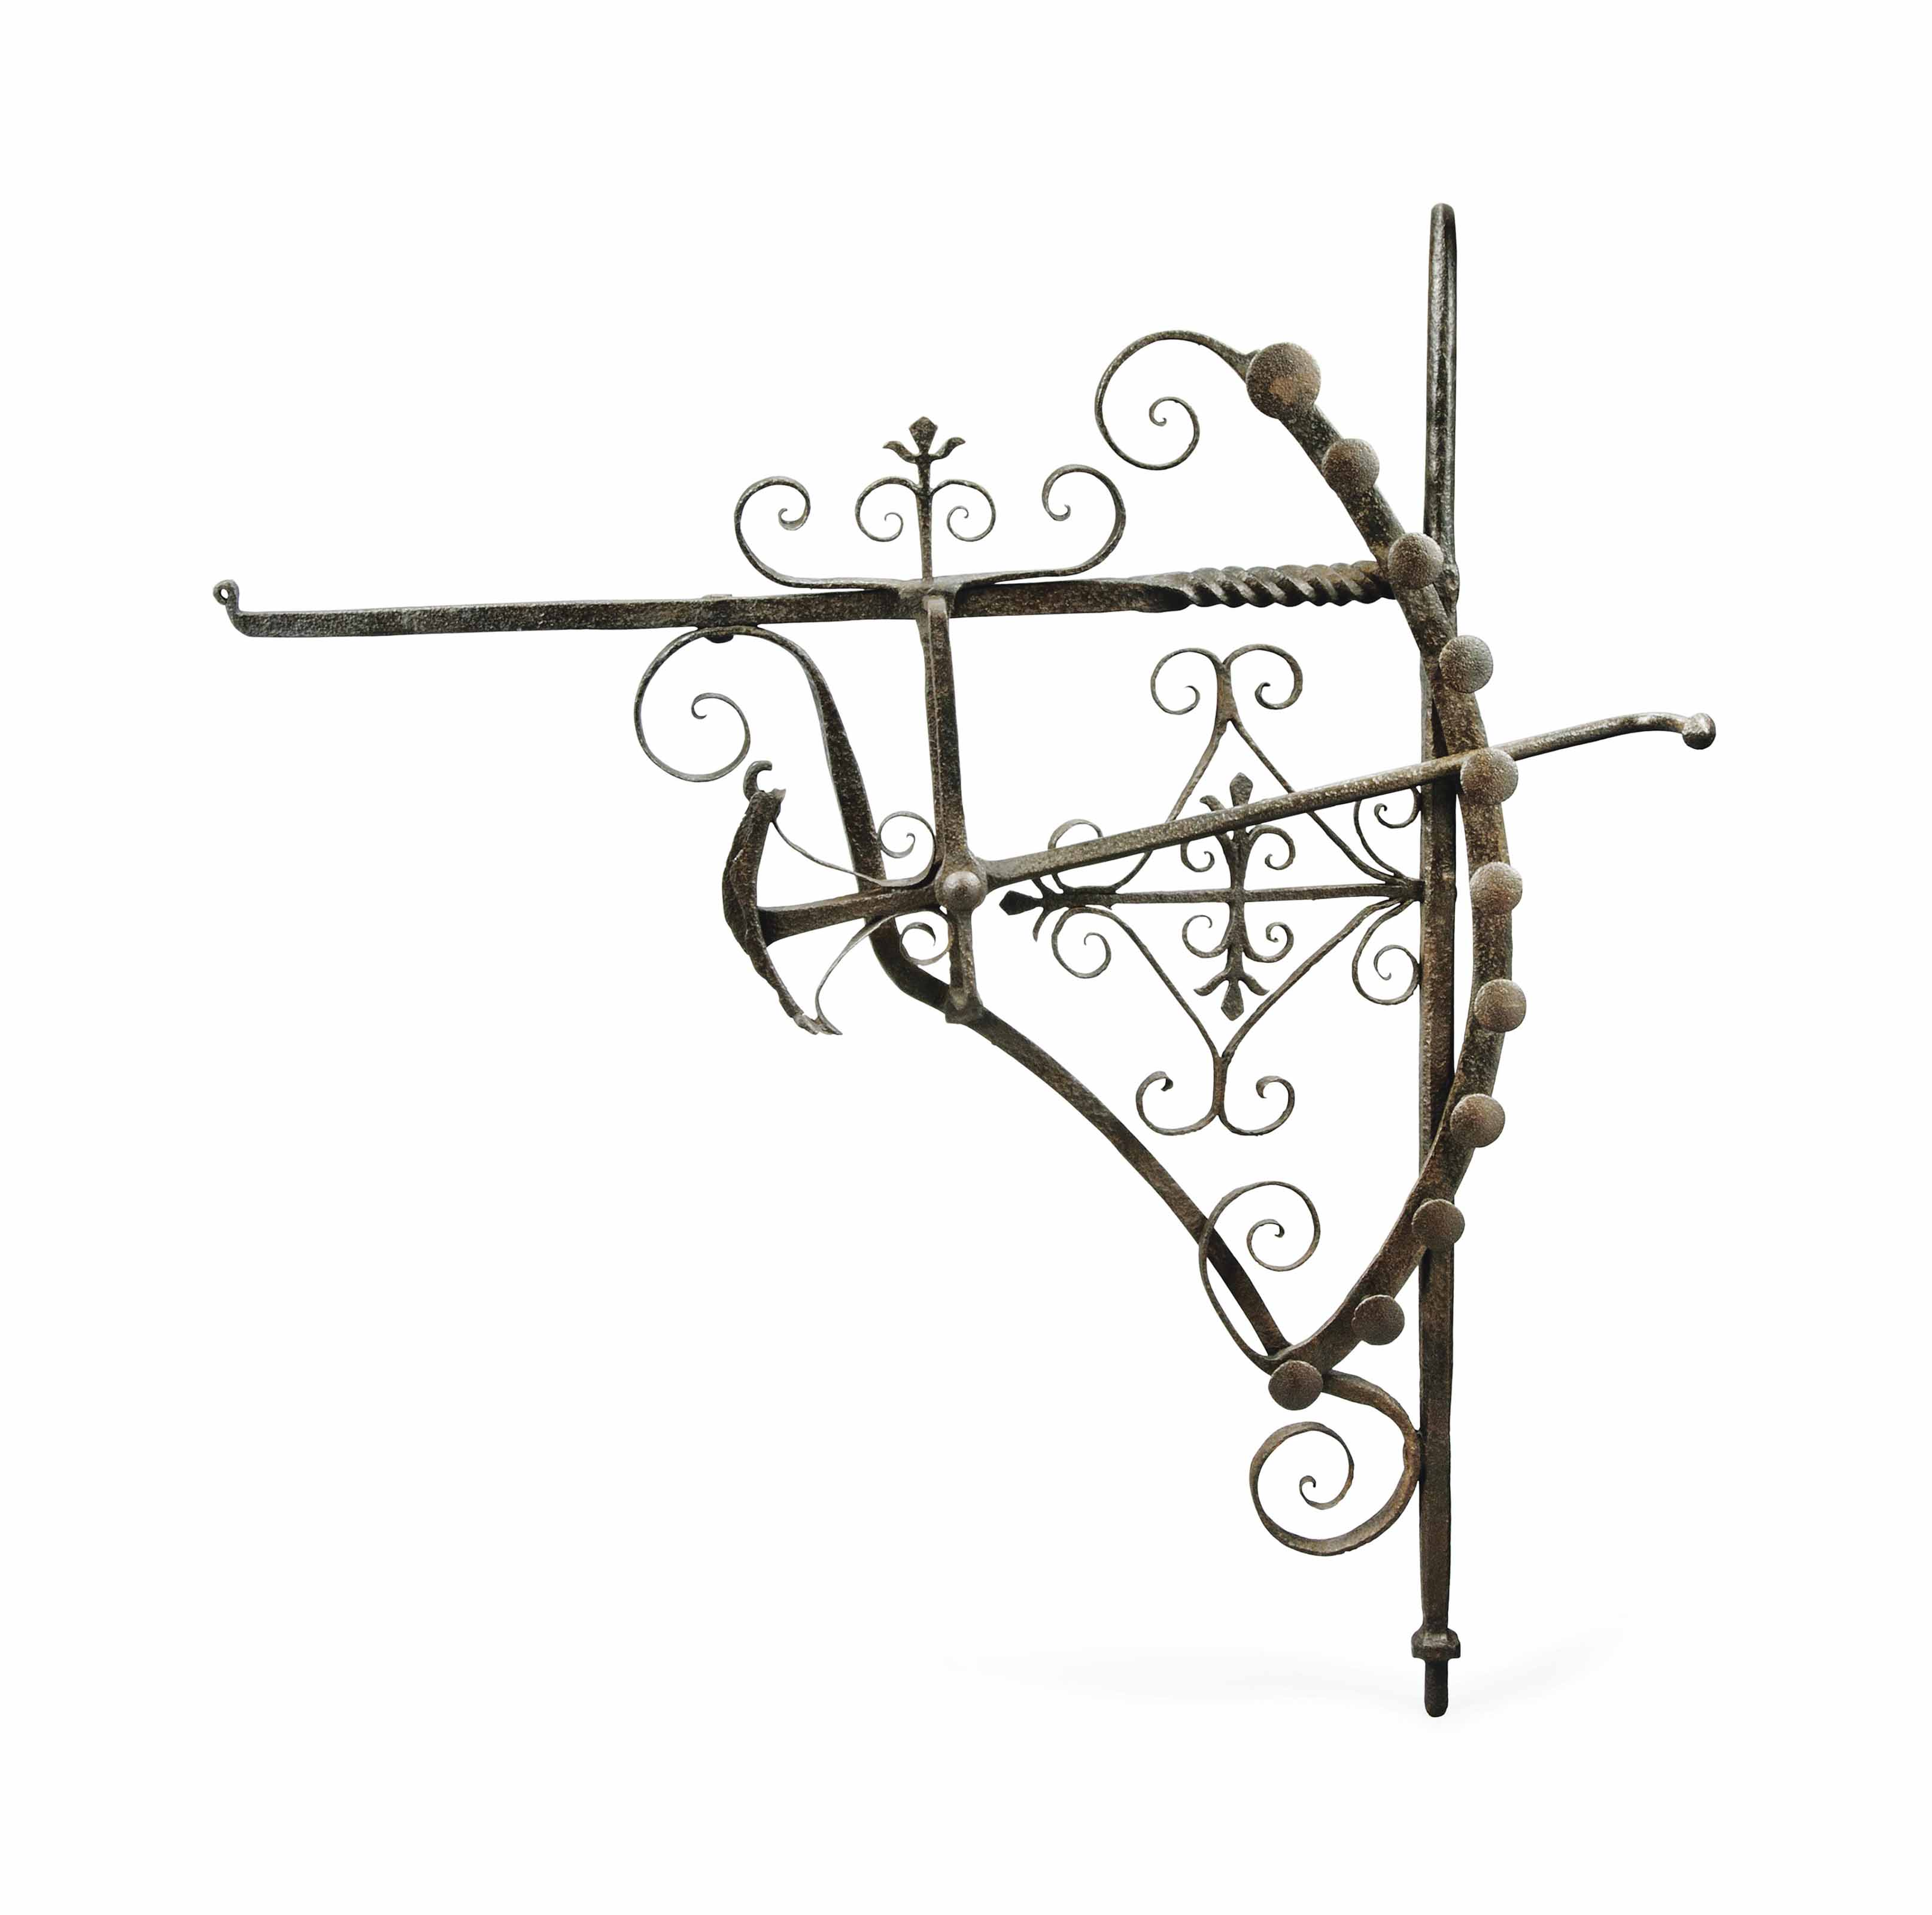 AN ENGLISH WROUGHT-IRON CHIMNE